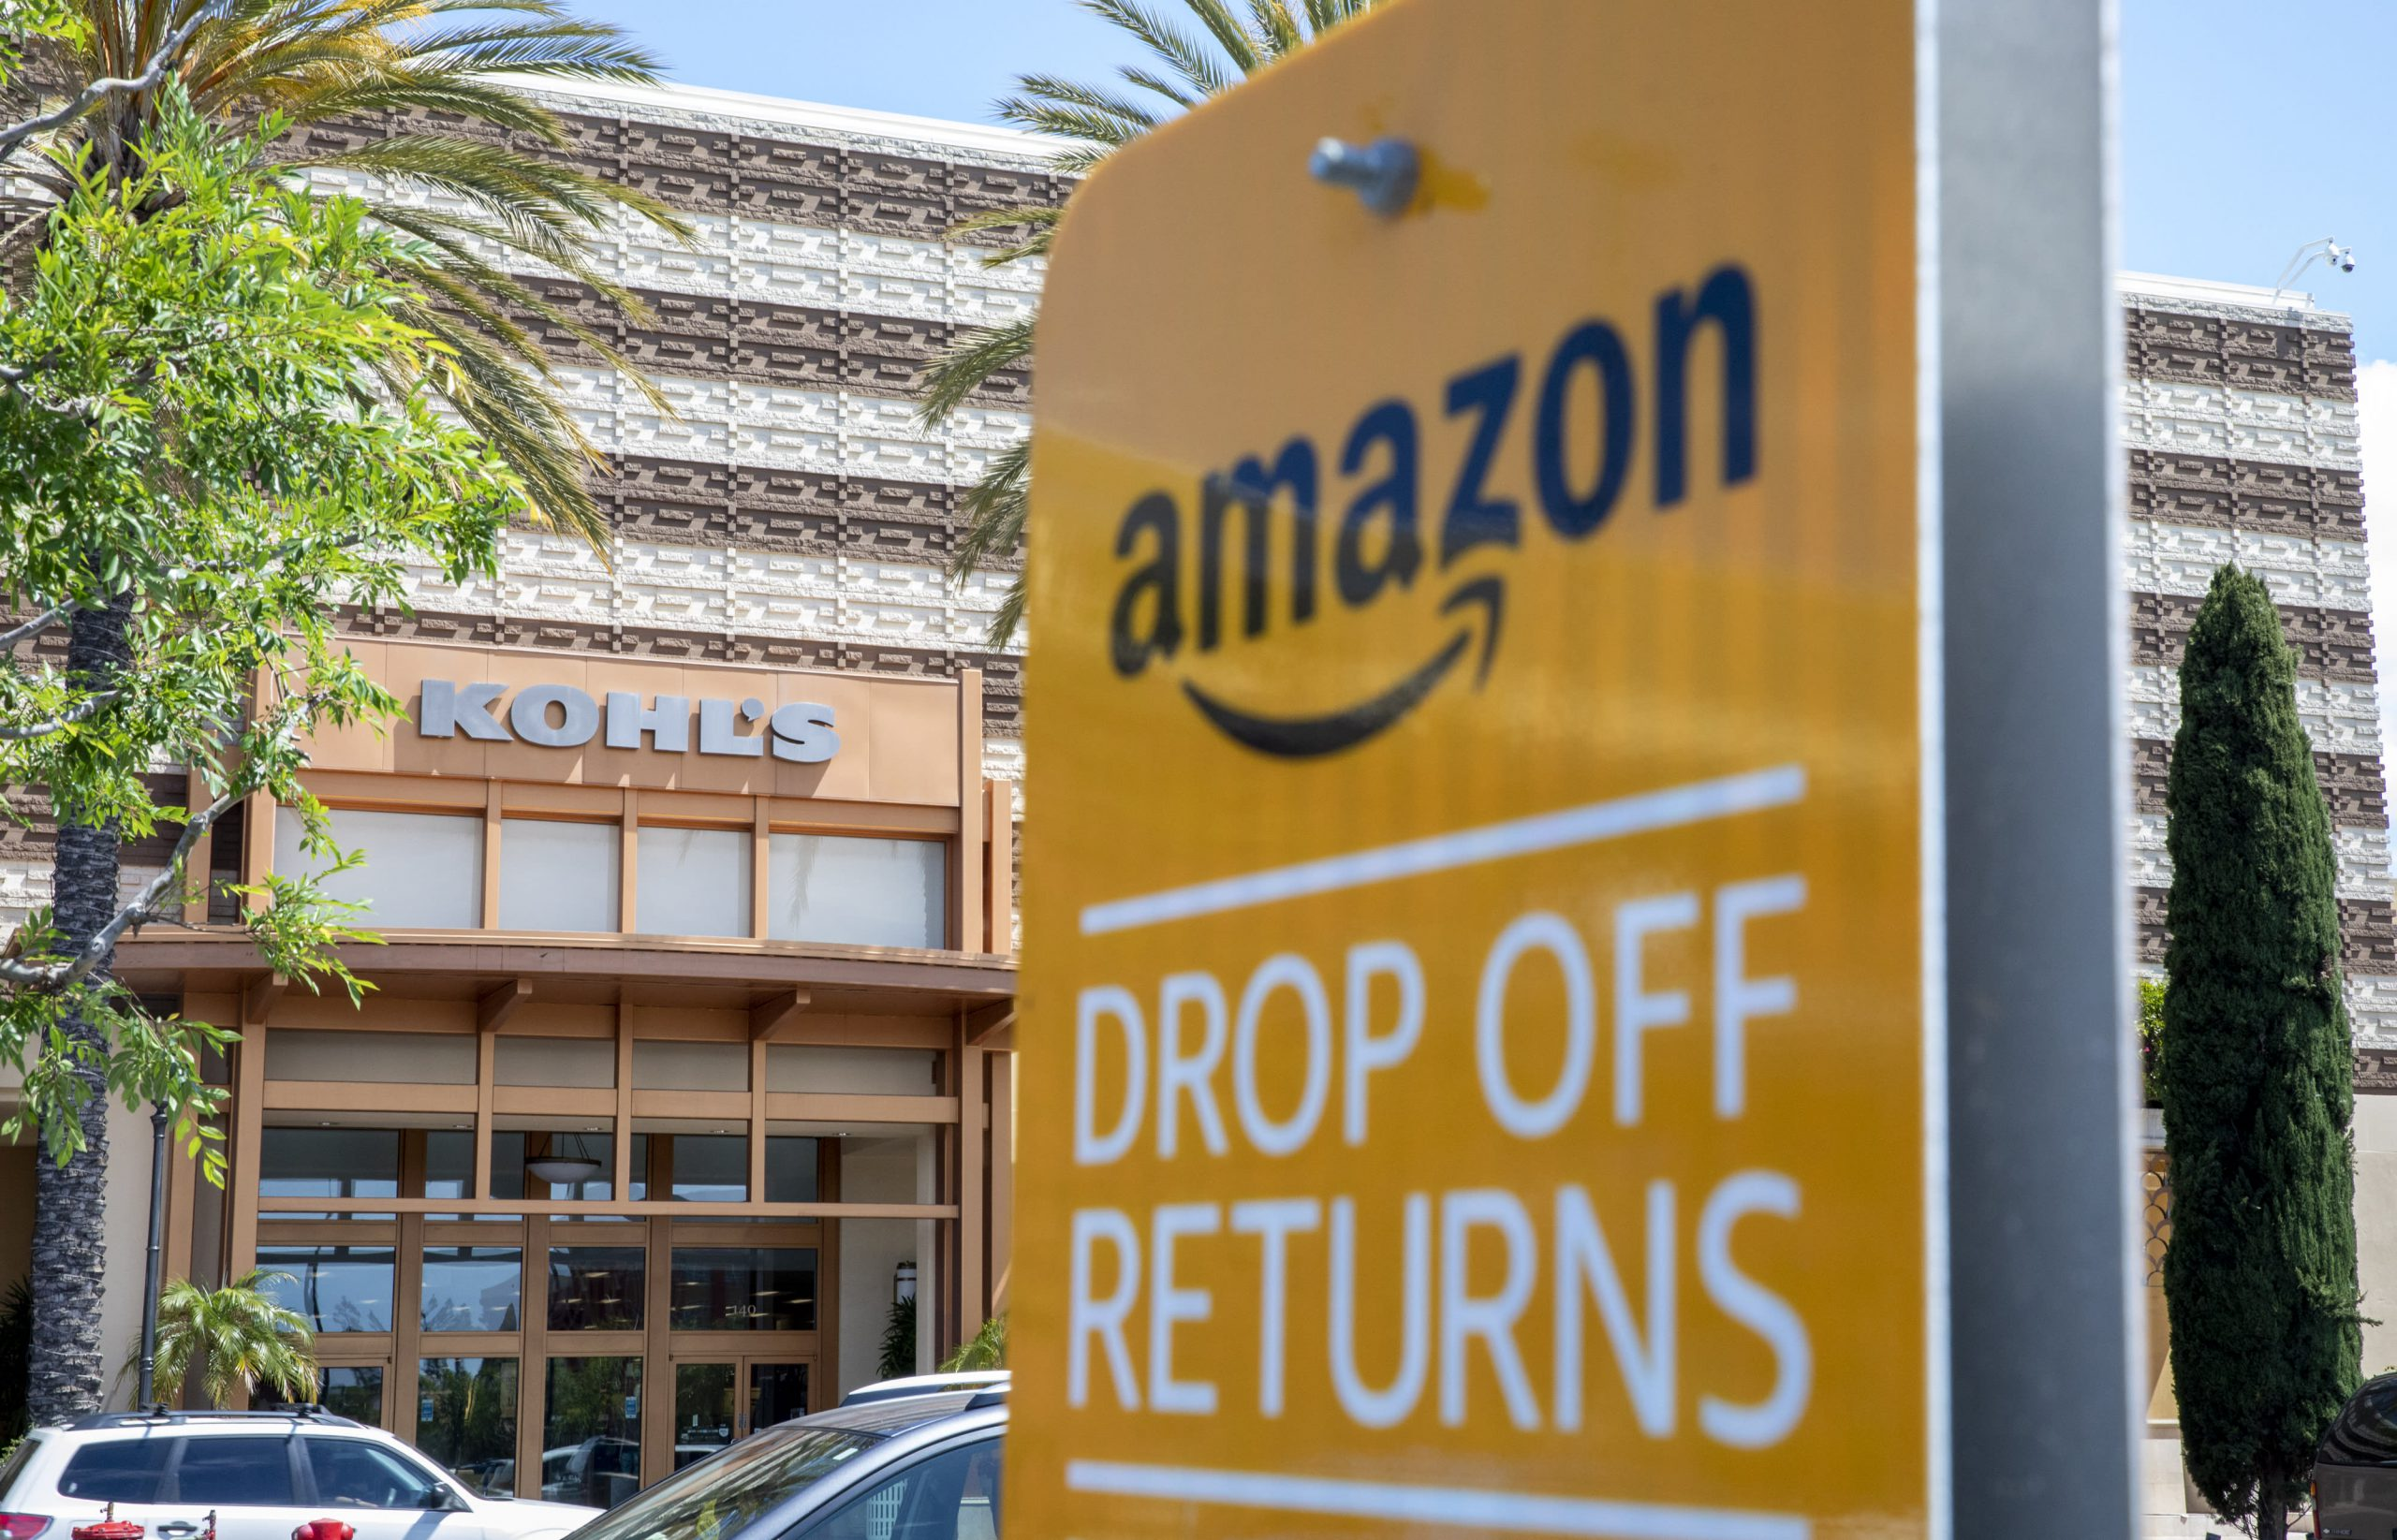 Stocks making the biggest moves midday: Amazon, American Airlines, Rite Aid & more